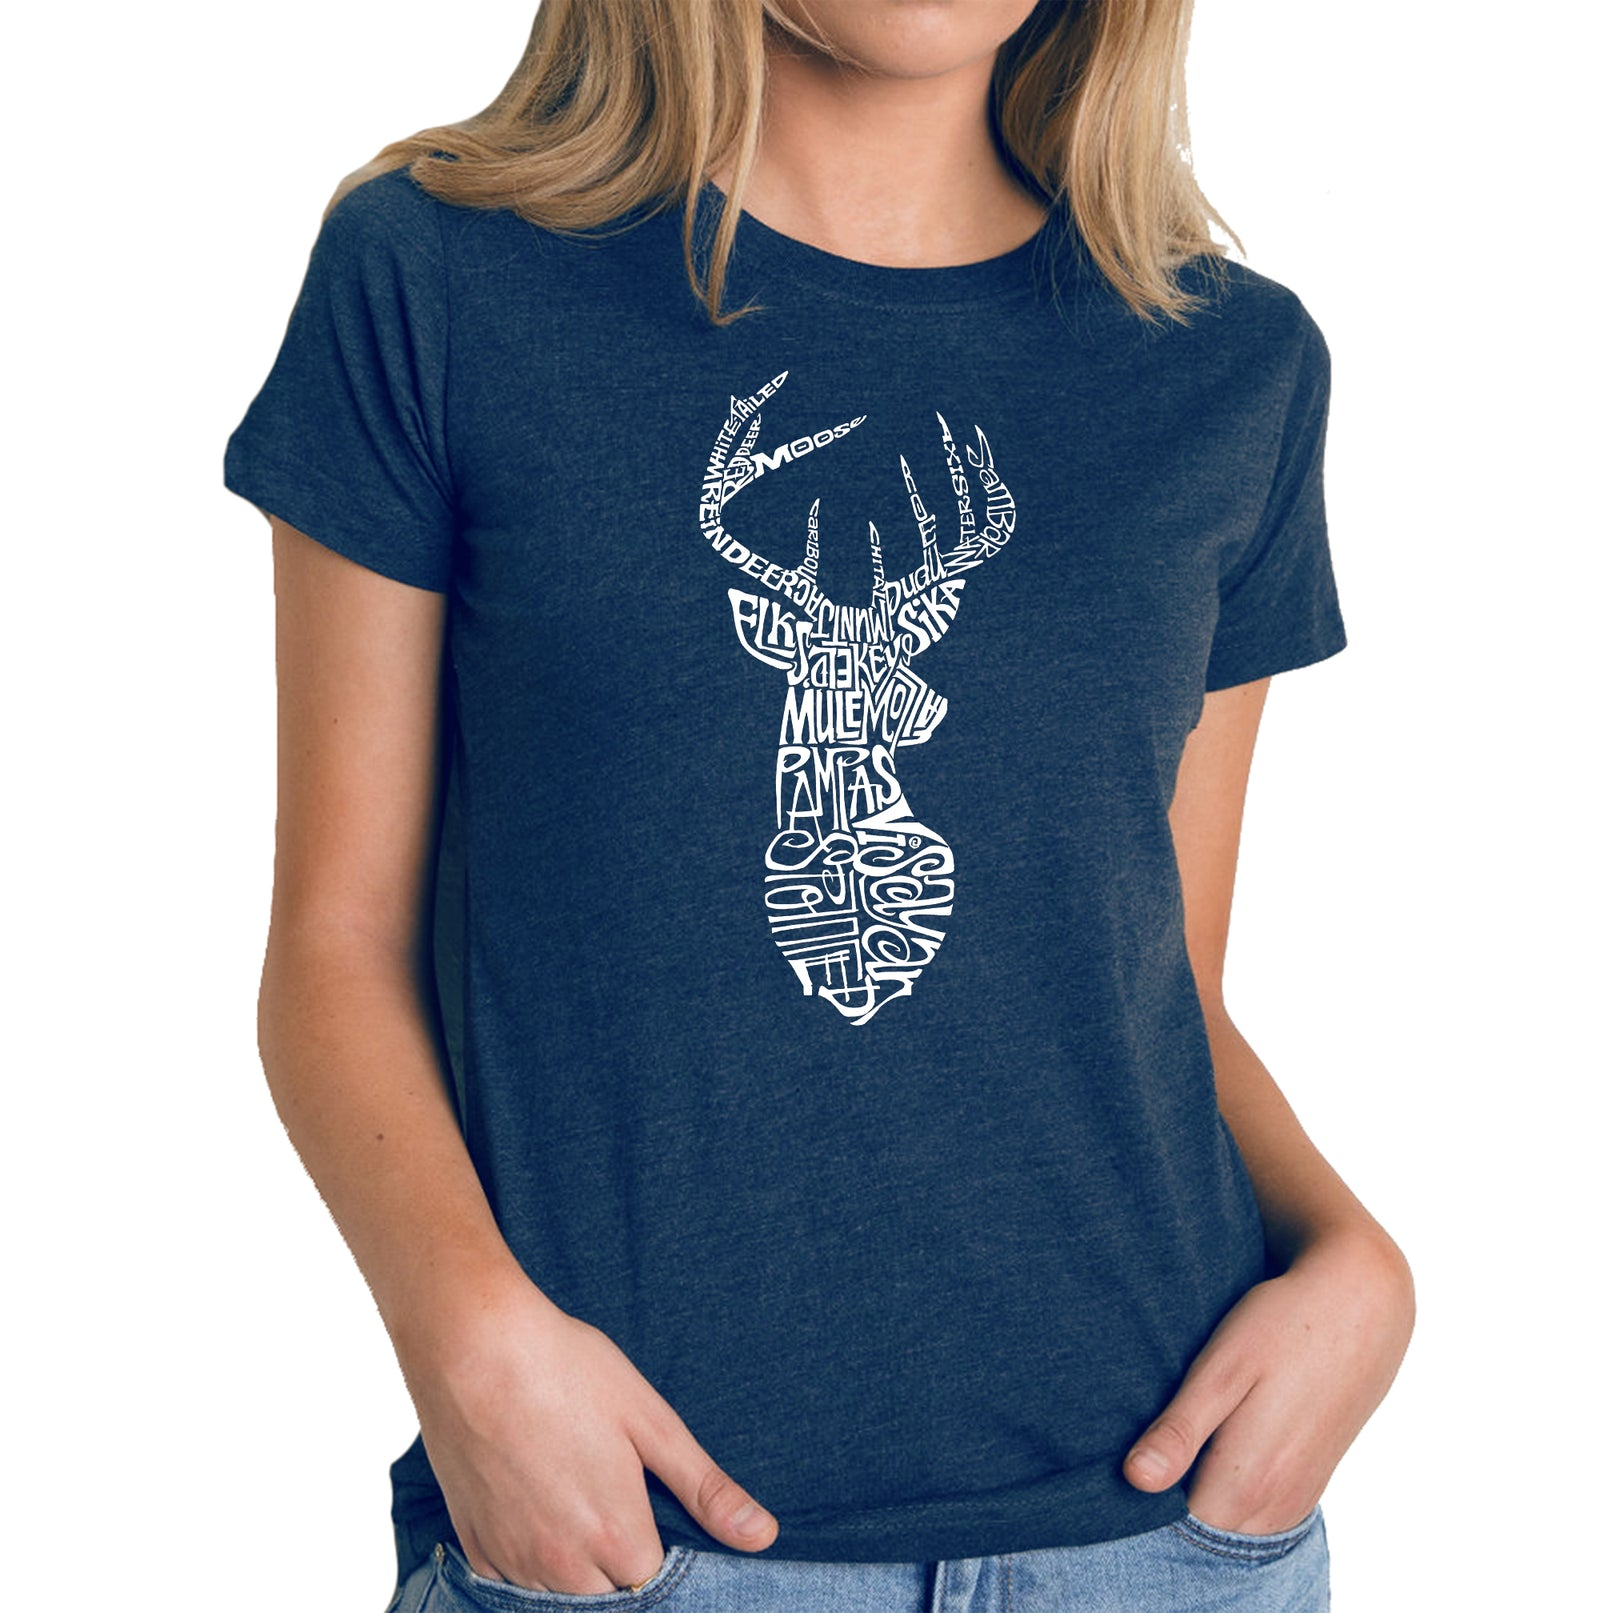 Women's Premium Blend Word Art T-shirt - Types of Deer